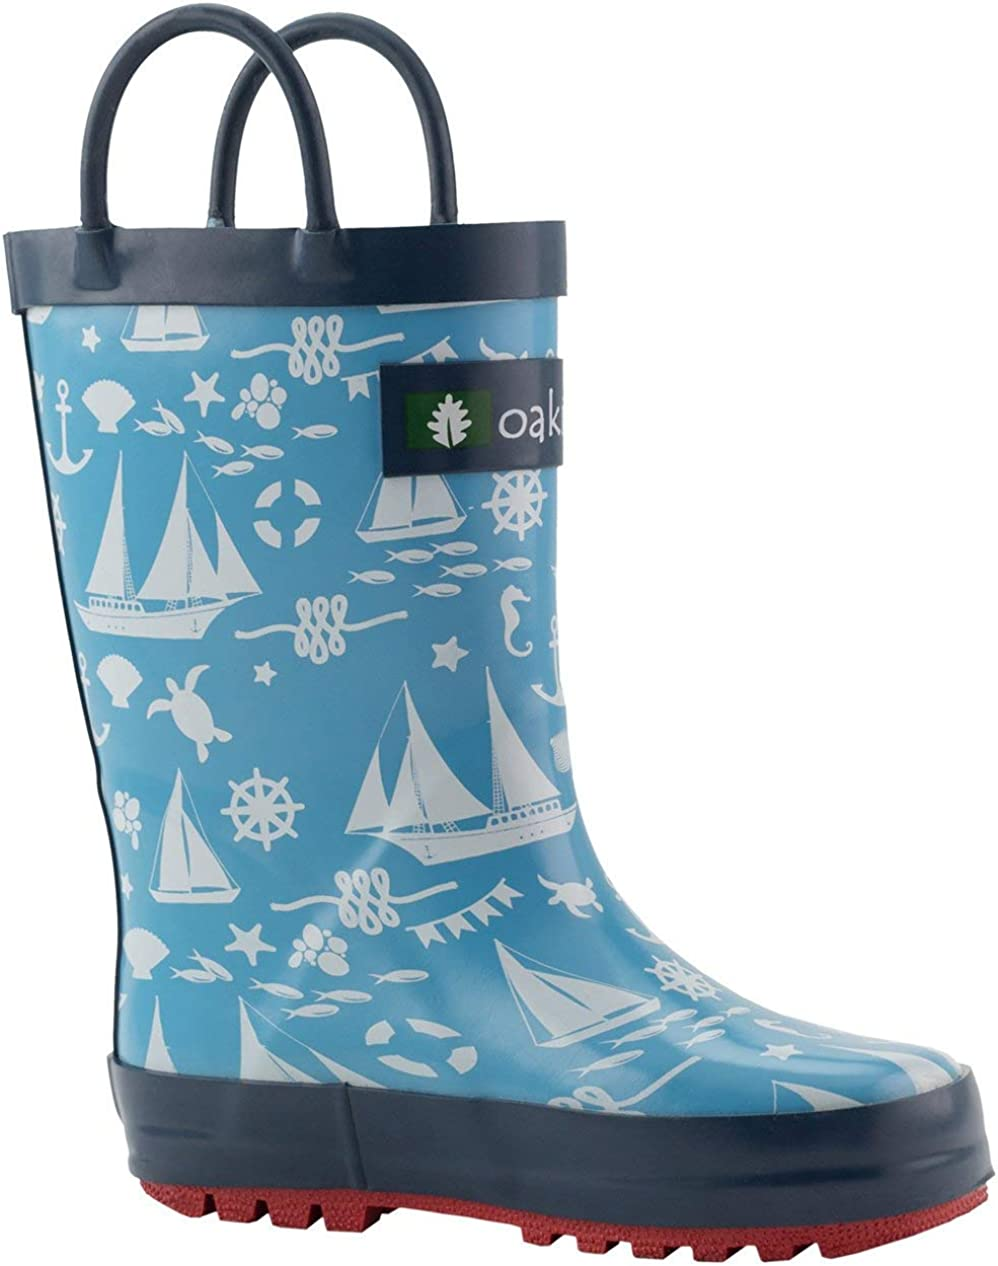 OAKI Kids Waterproof Rubber Rain Boots with Easy-On Handles